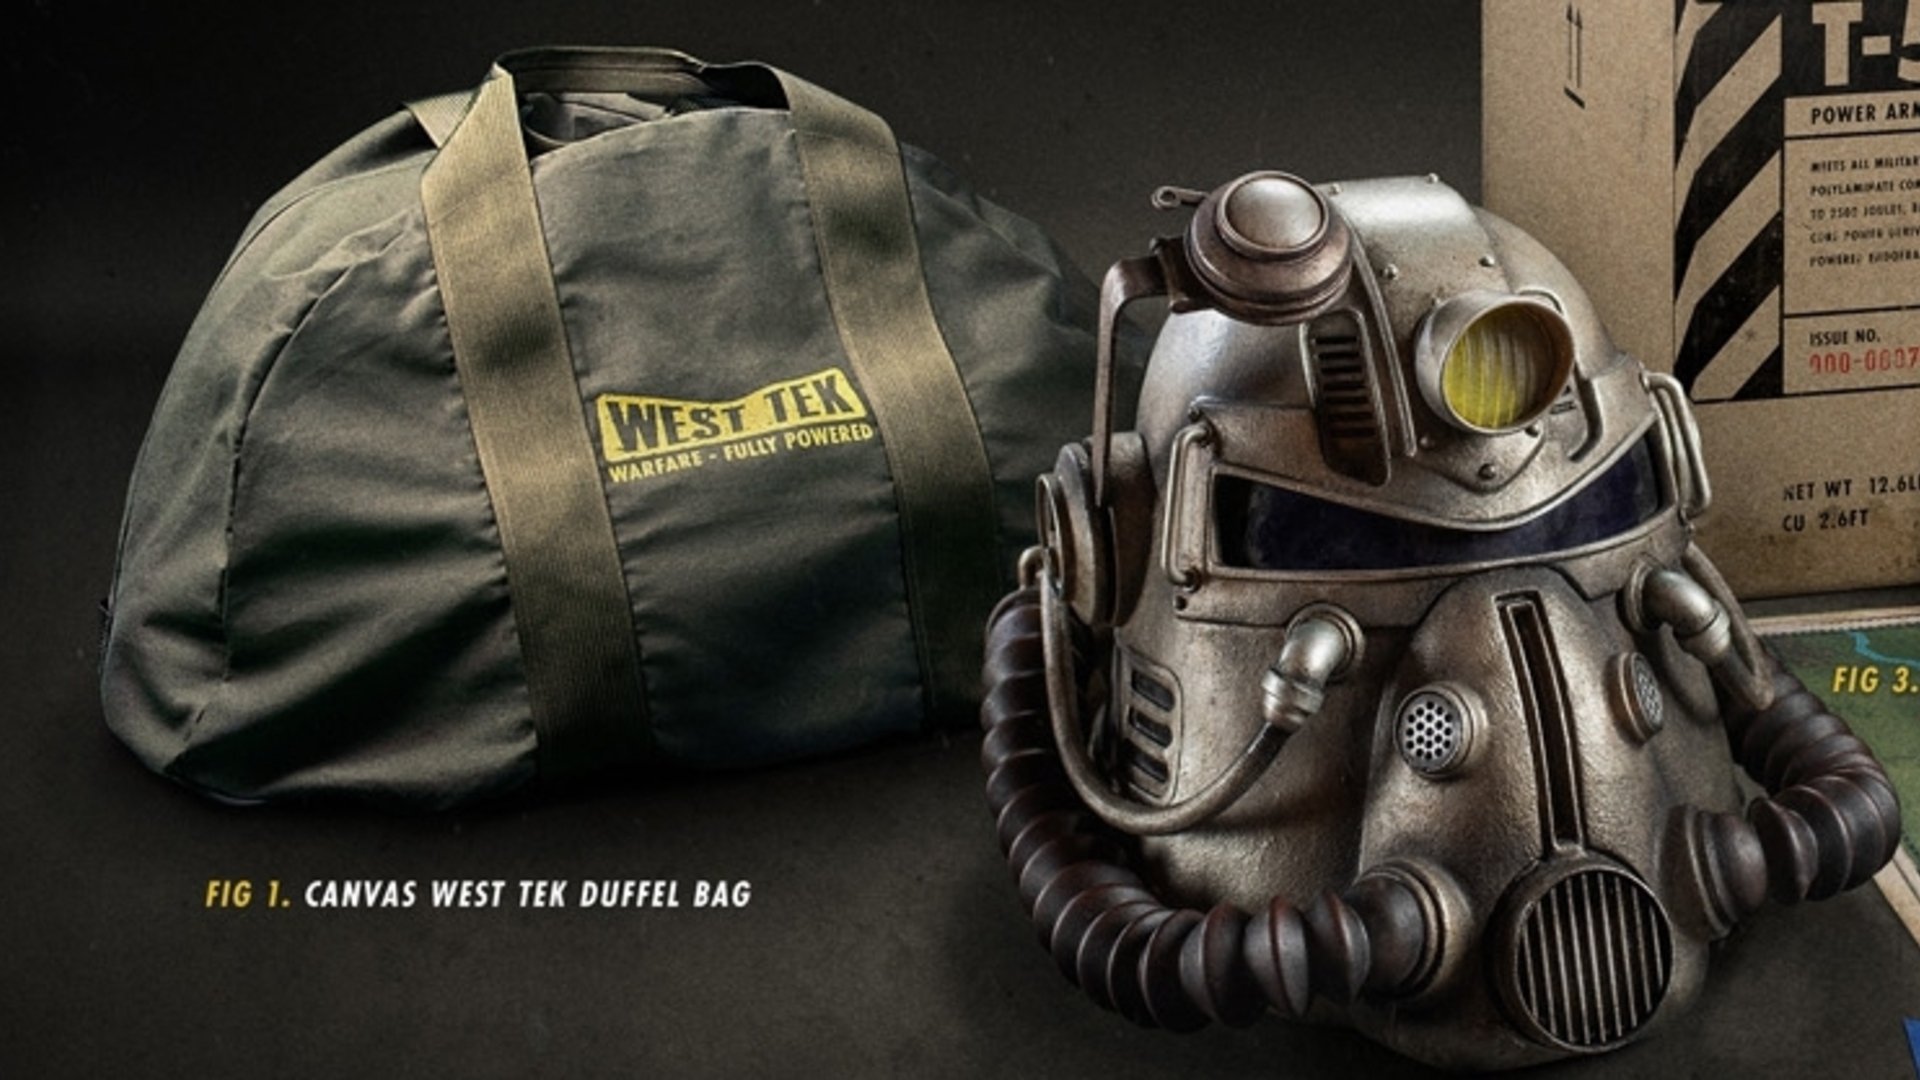 Fallout 76 replacement bags will be shipping out in 4-6 months